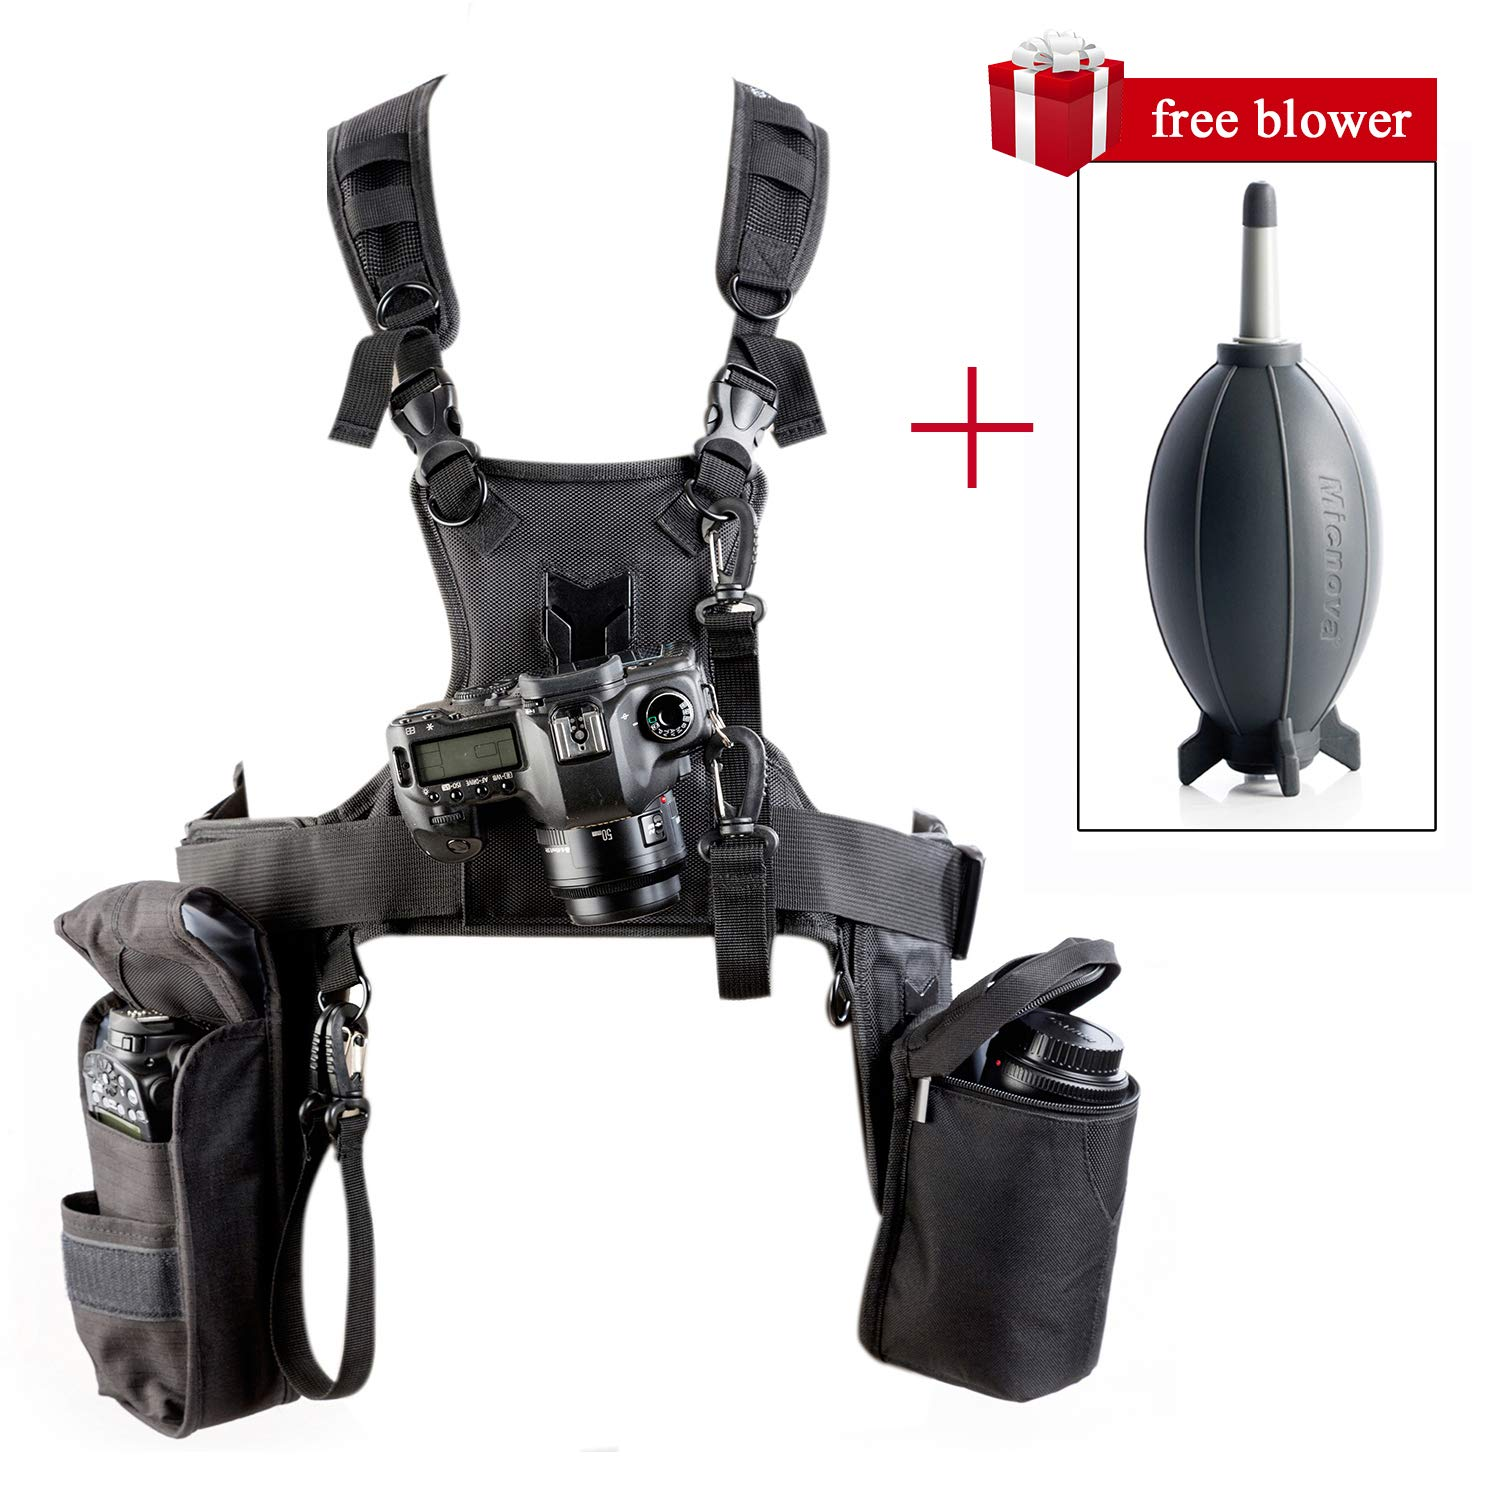 Triple Camera Harness, Micnova Carrying Chest Vest System with Side Holster for Smartphone Lens Canon Nikon Sony DV DSLR Camcorder Tripod Stand Wedding Journalism YouTube Vlog Livestream by Micnova